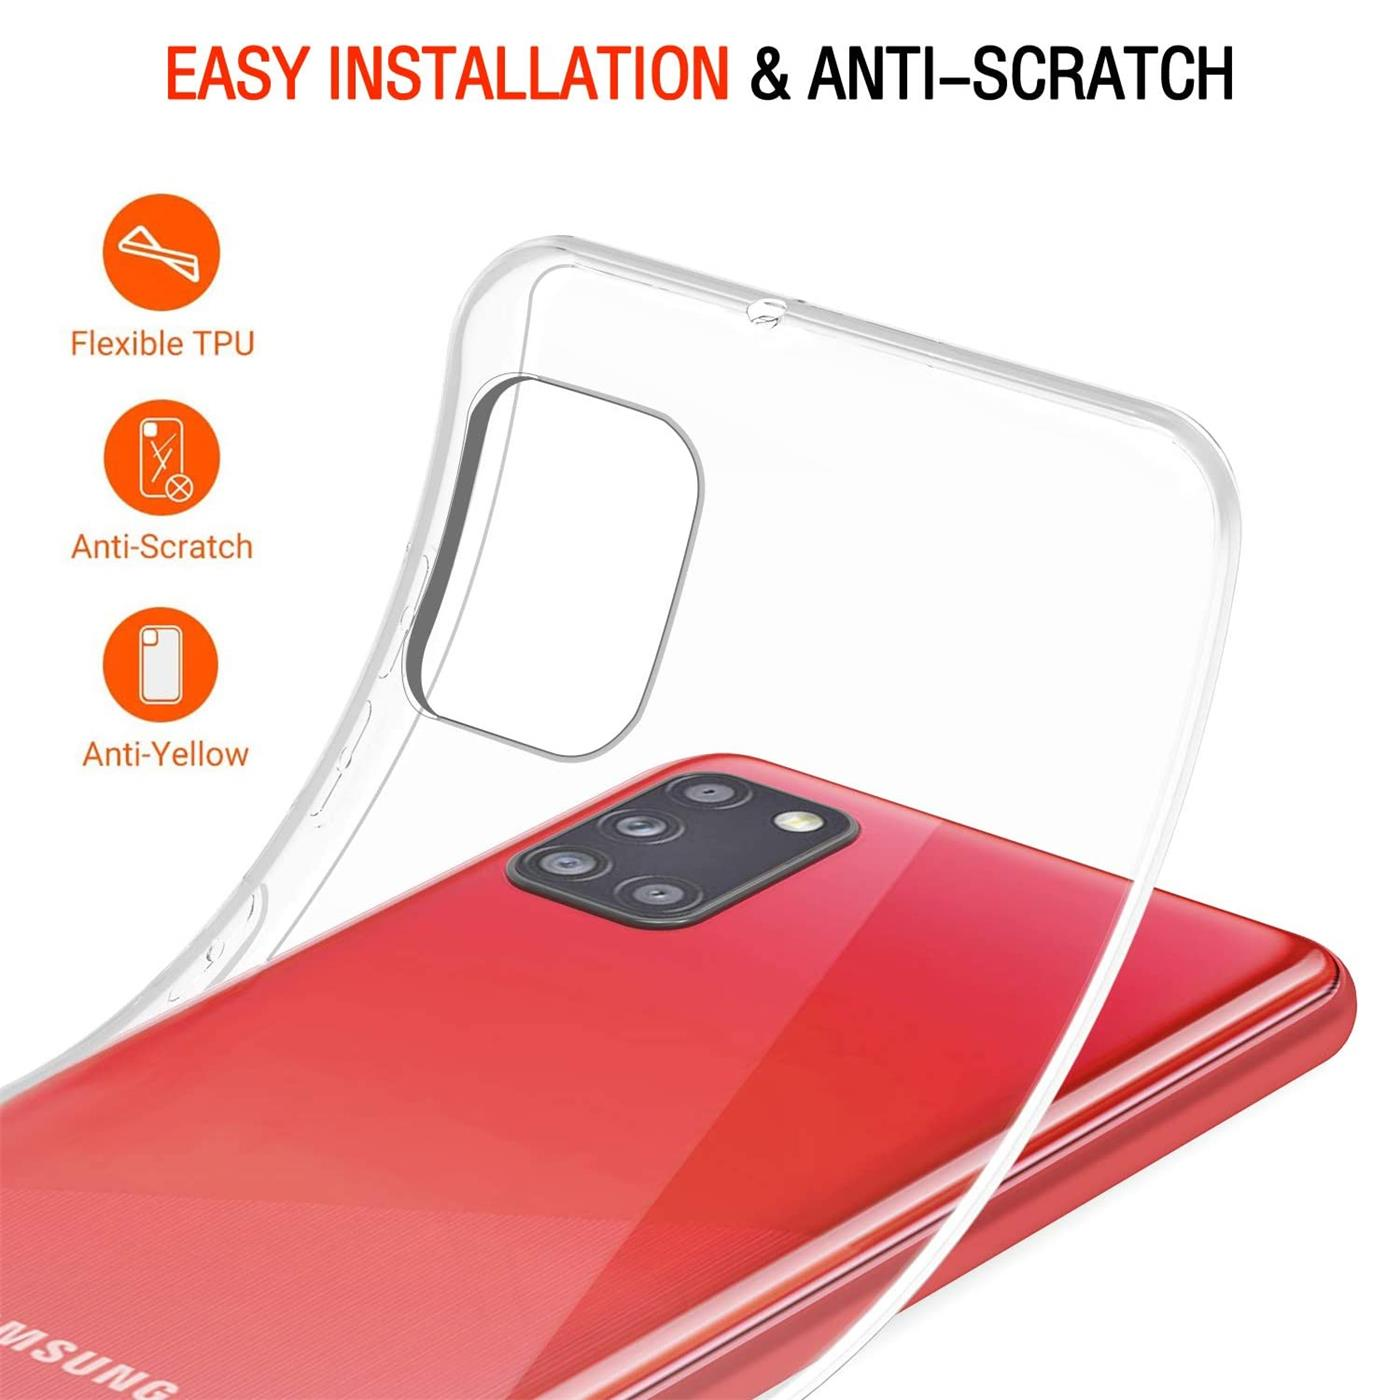 Handy-Case-fuer-Samsung-Galaxy-A31-Huelle-Transparent-Slim-Tasche-Handyhuelle-Cover Indexbild 9